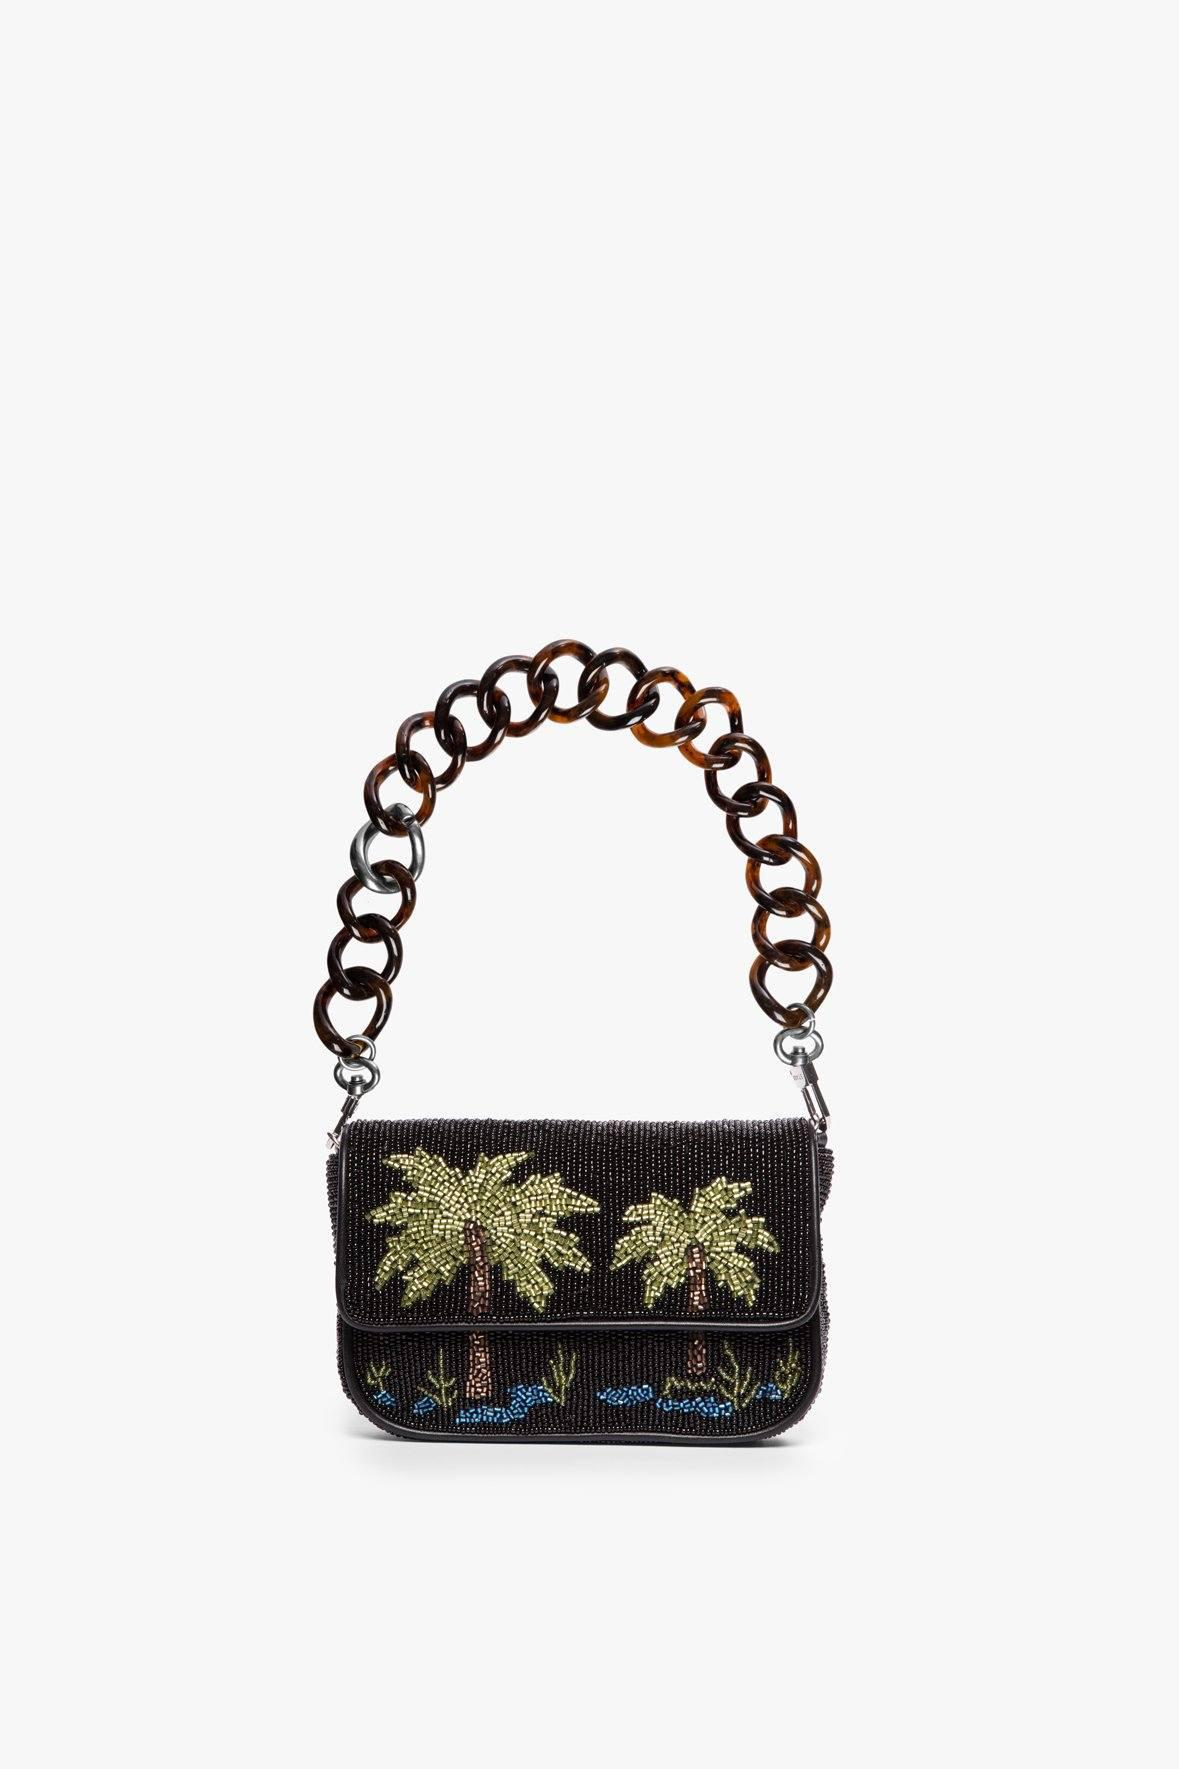 MINI TOMMY BEADED CHAIN BAG | PALM